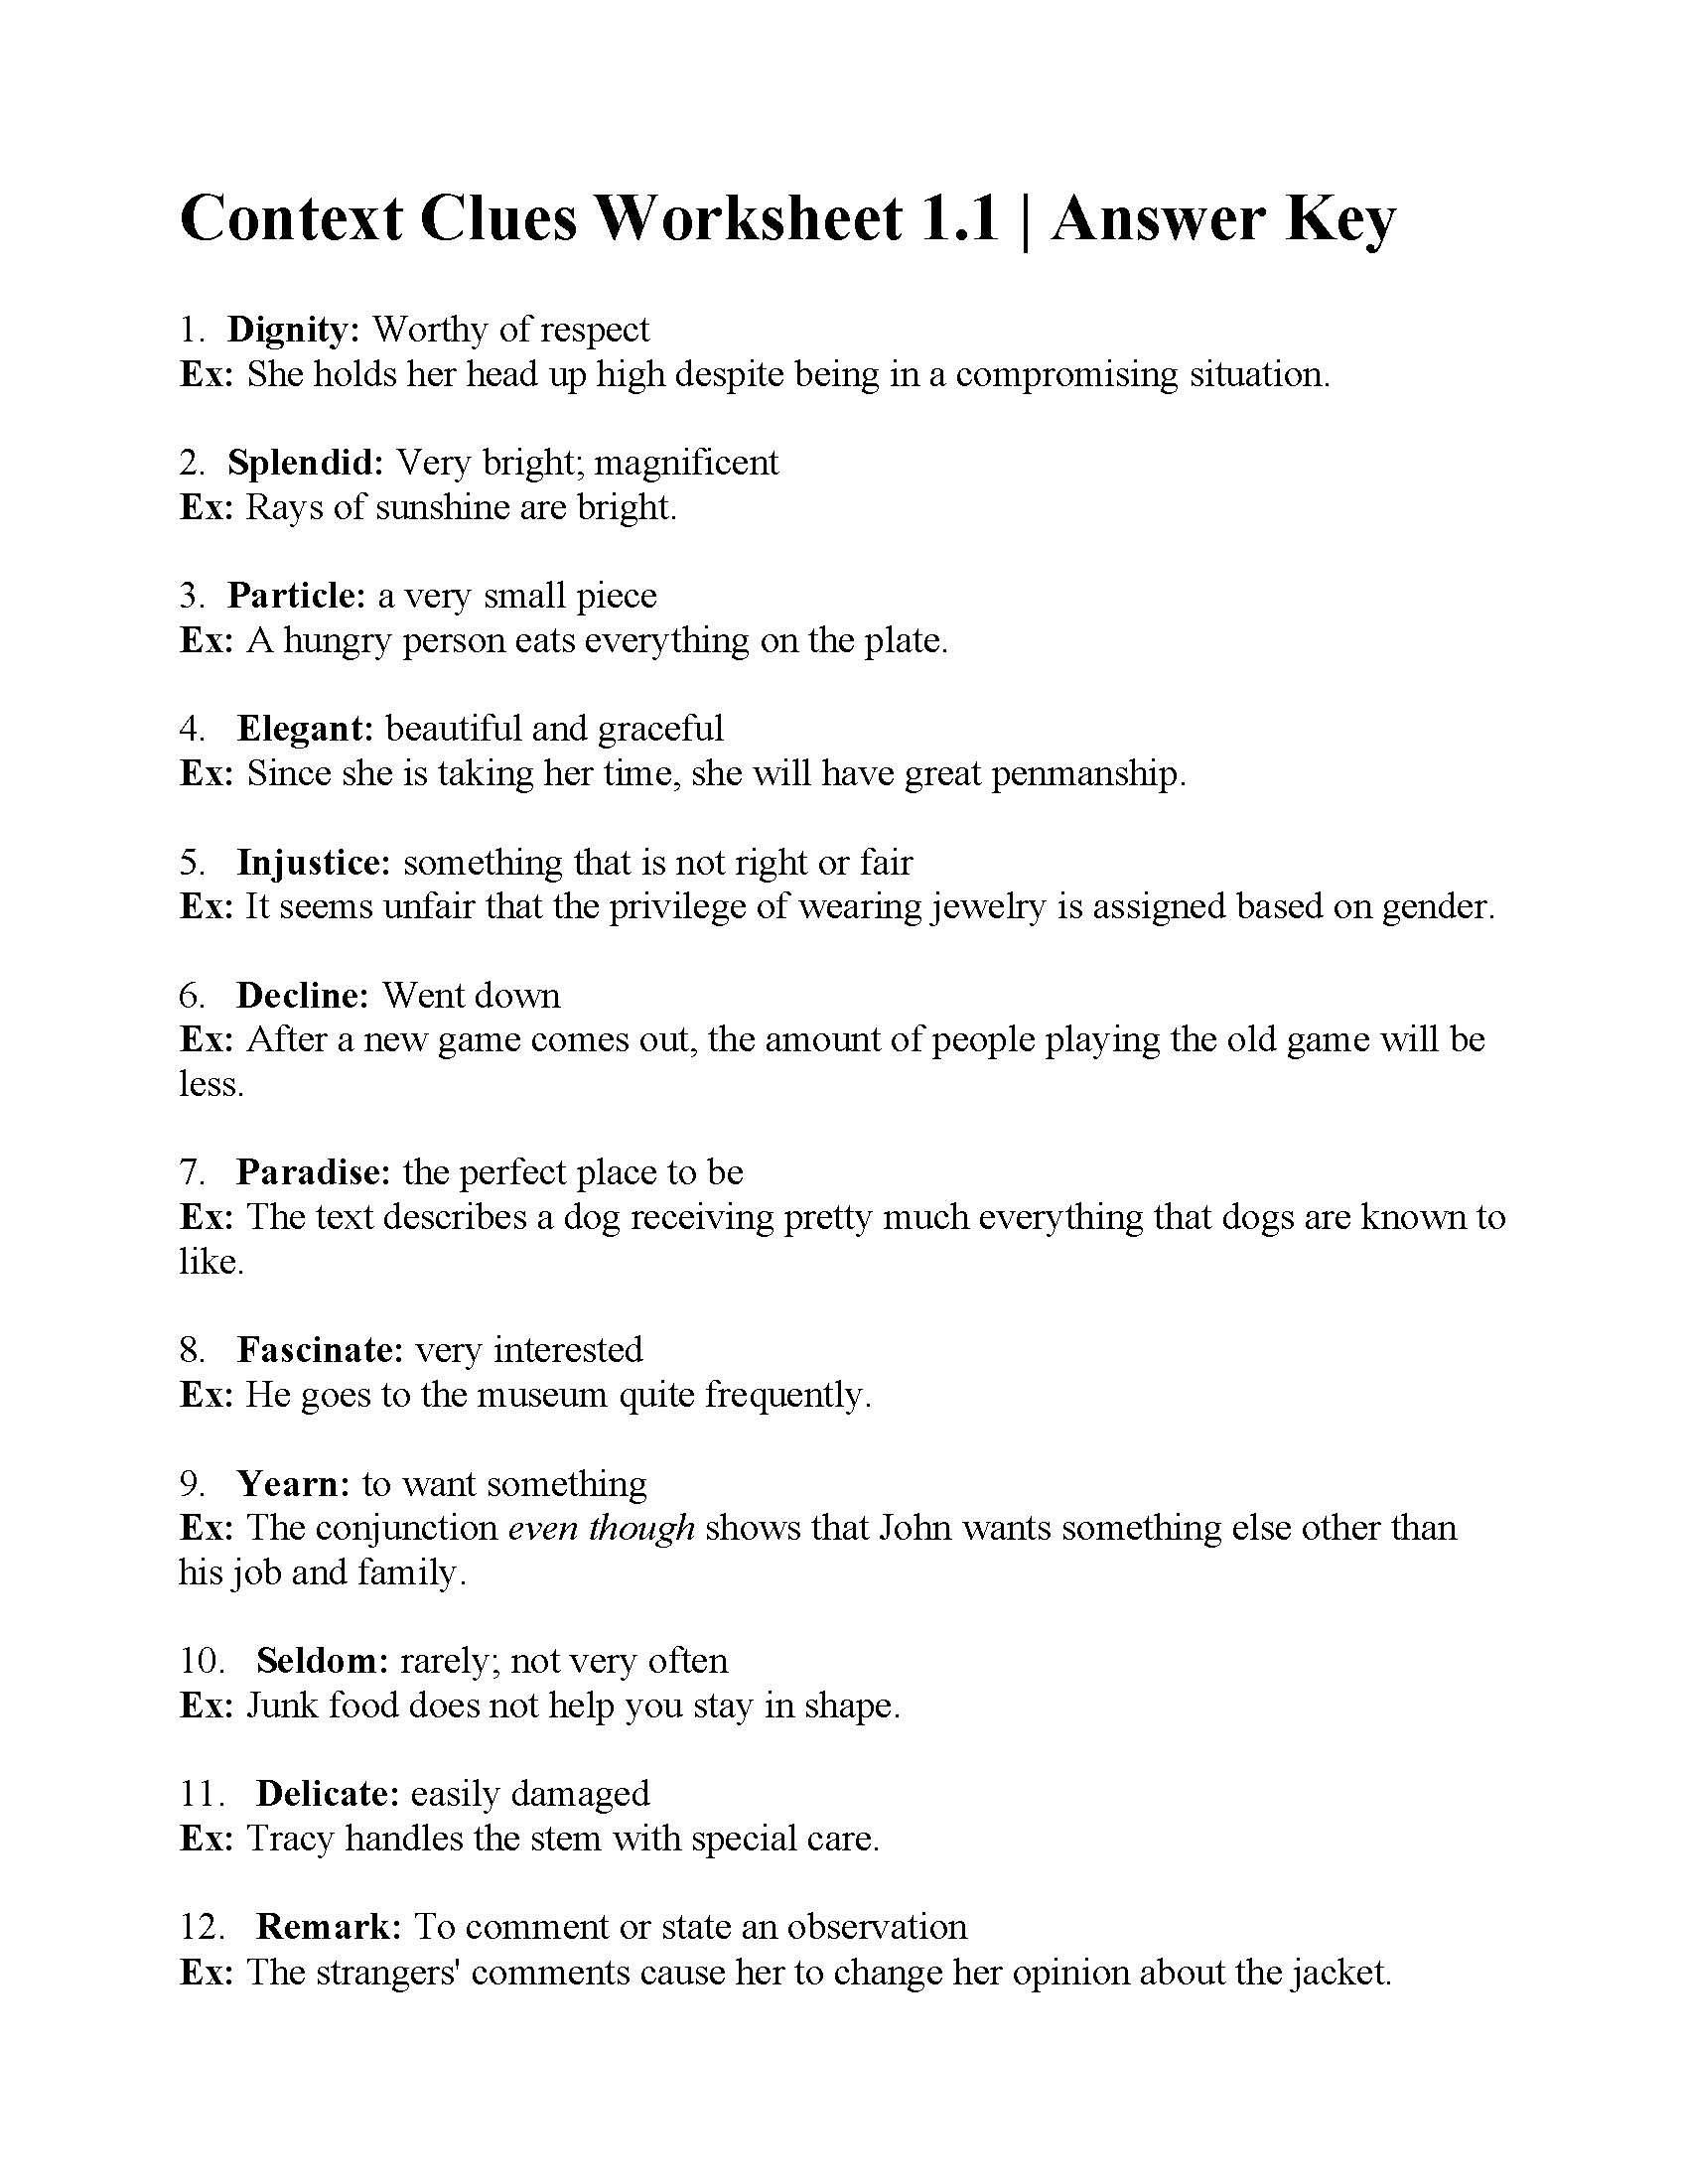 Context Clues 5th Grade Worksheets Teacher Worksheets Context Clues